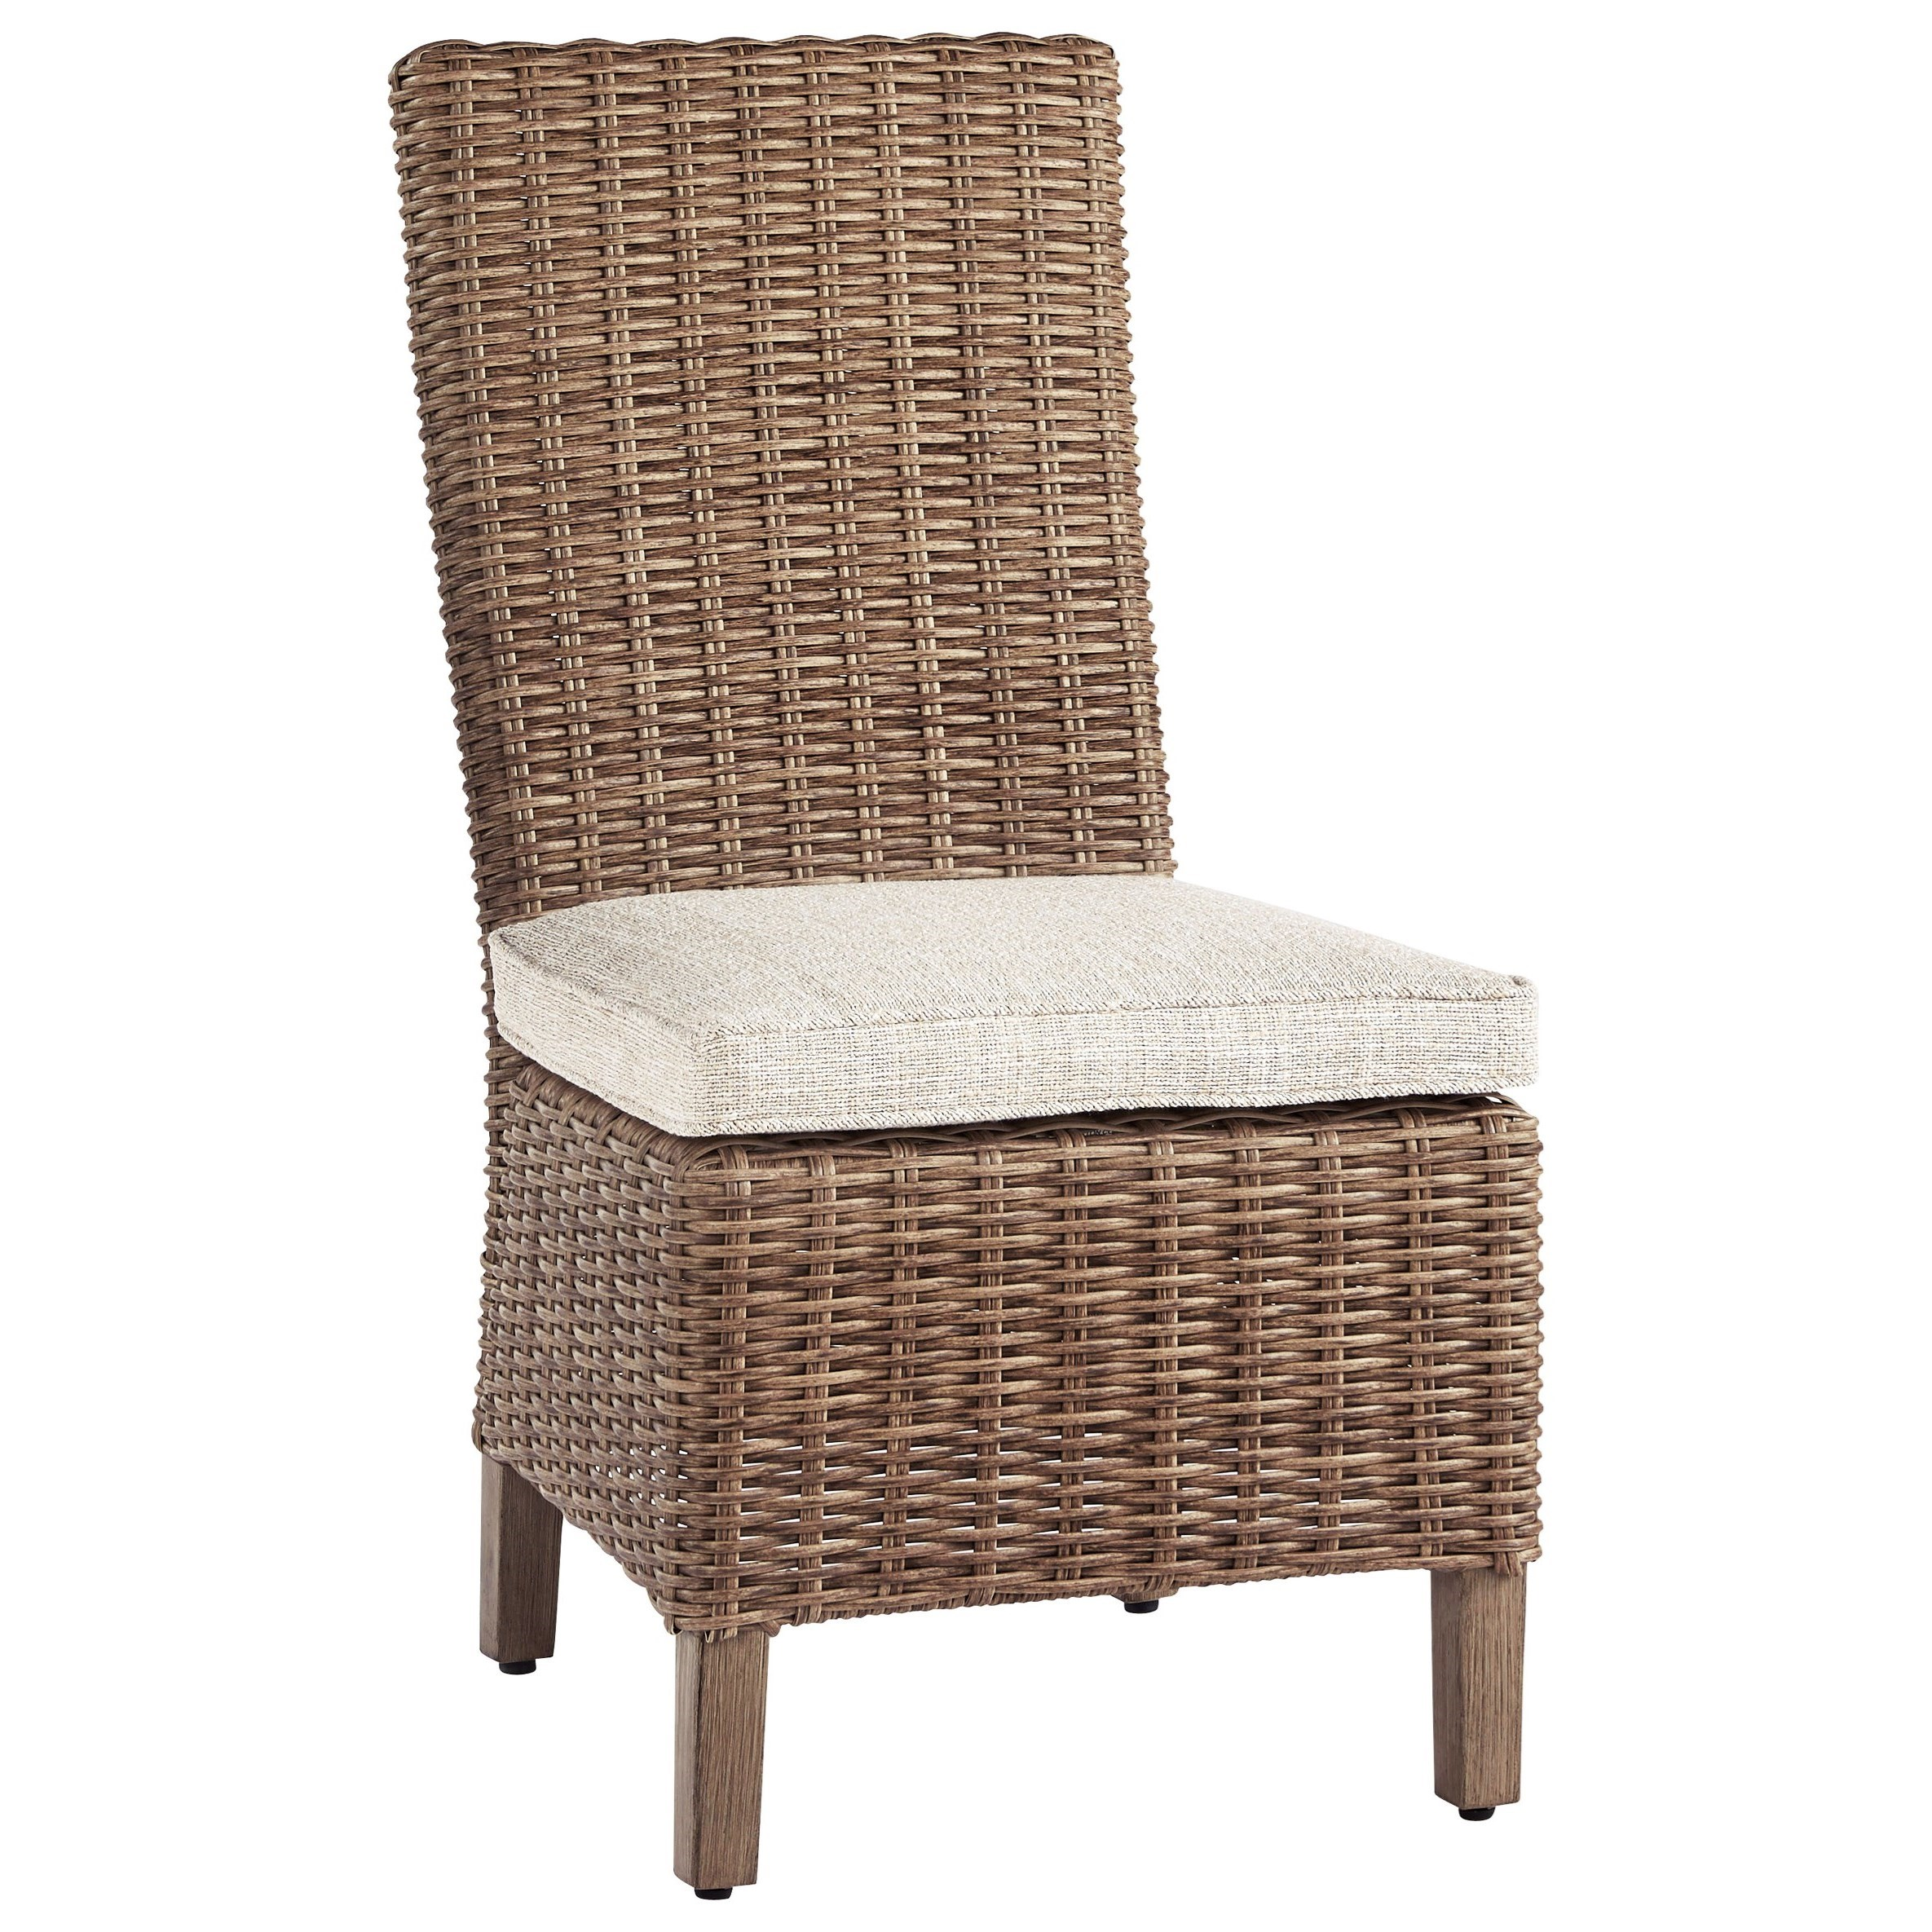 Beachcroft Set of 2 Side Chairs with Cushion by Signature Design by Ashley at Household Furniture